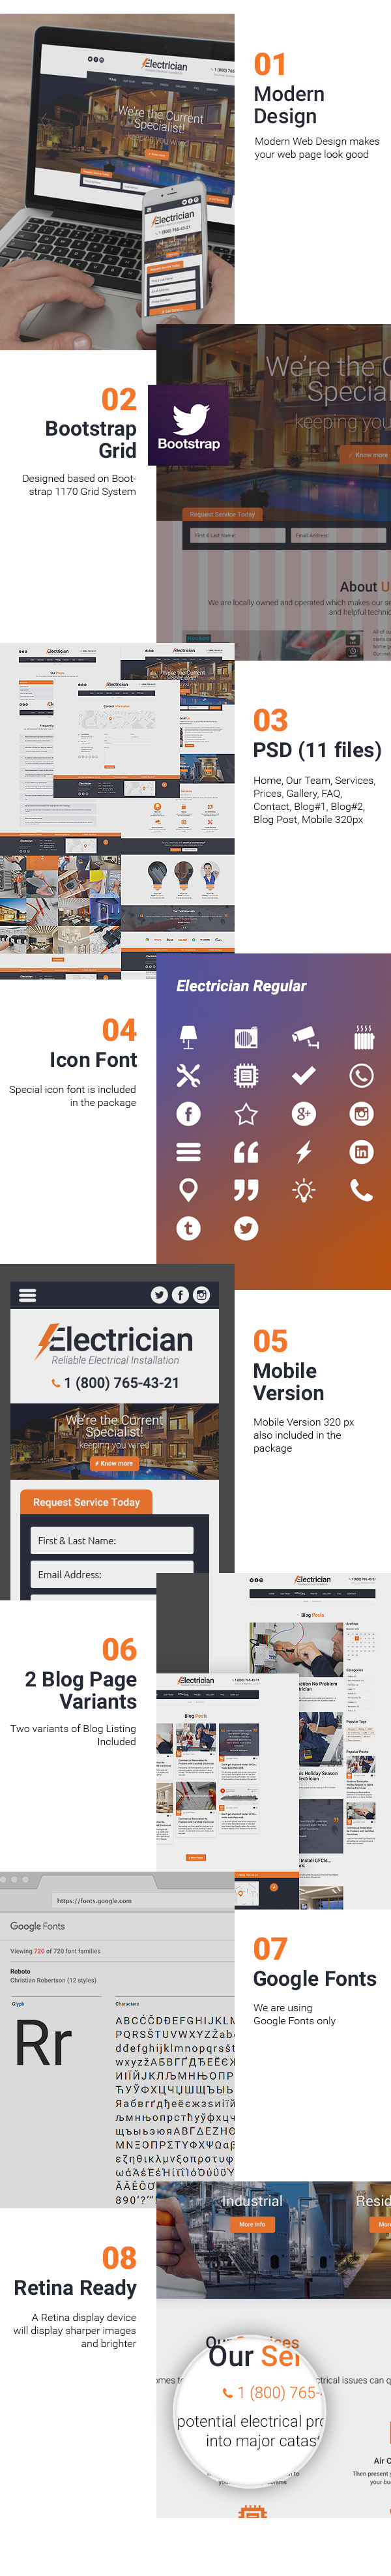 Electrician Free Psd Template Presentation